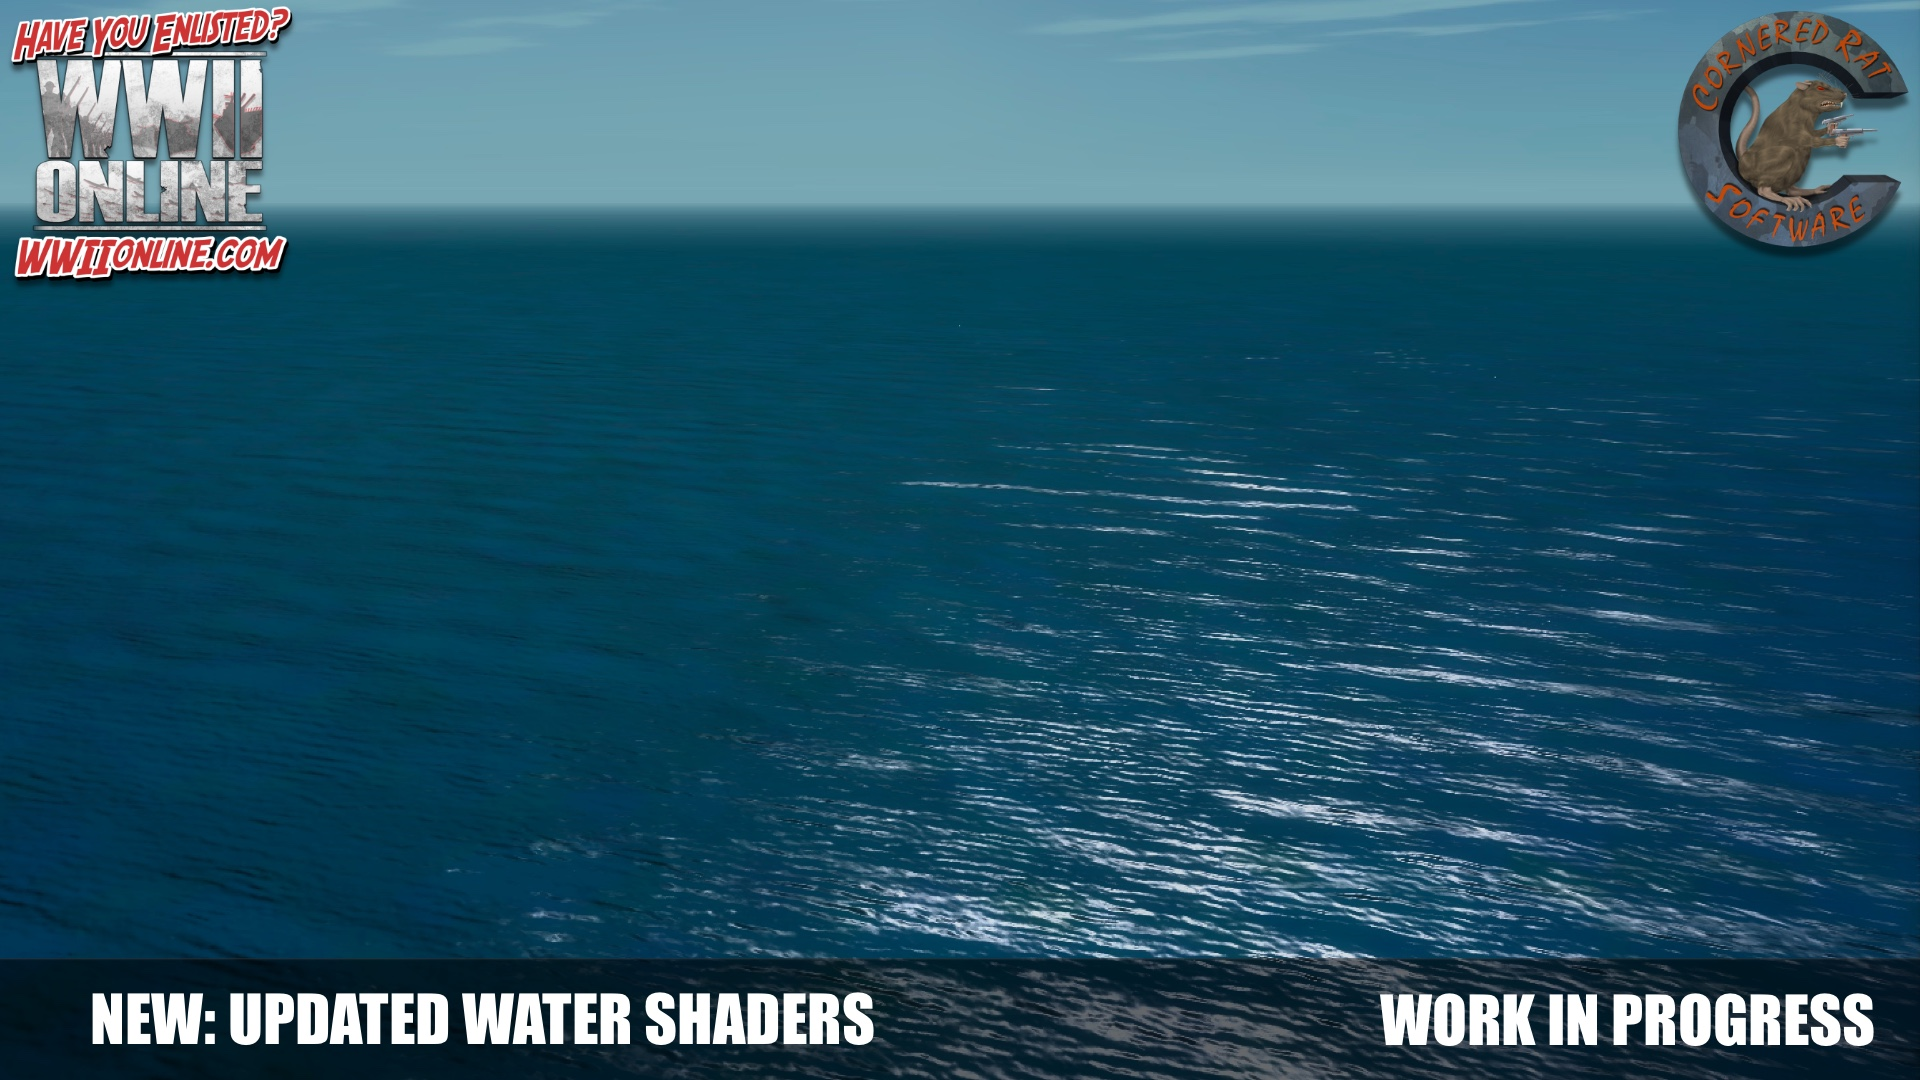 New water shaders in progress